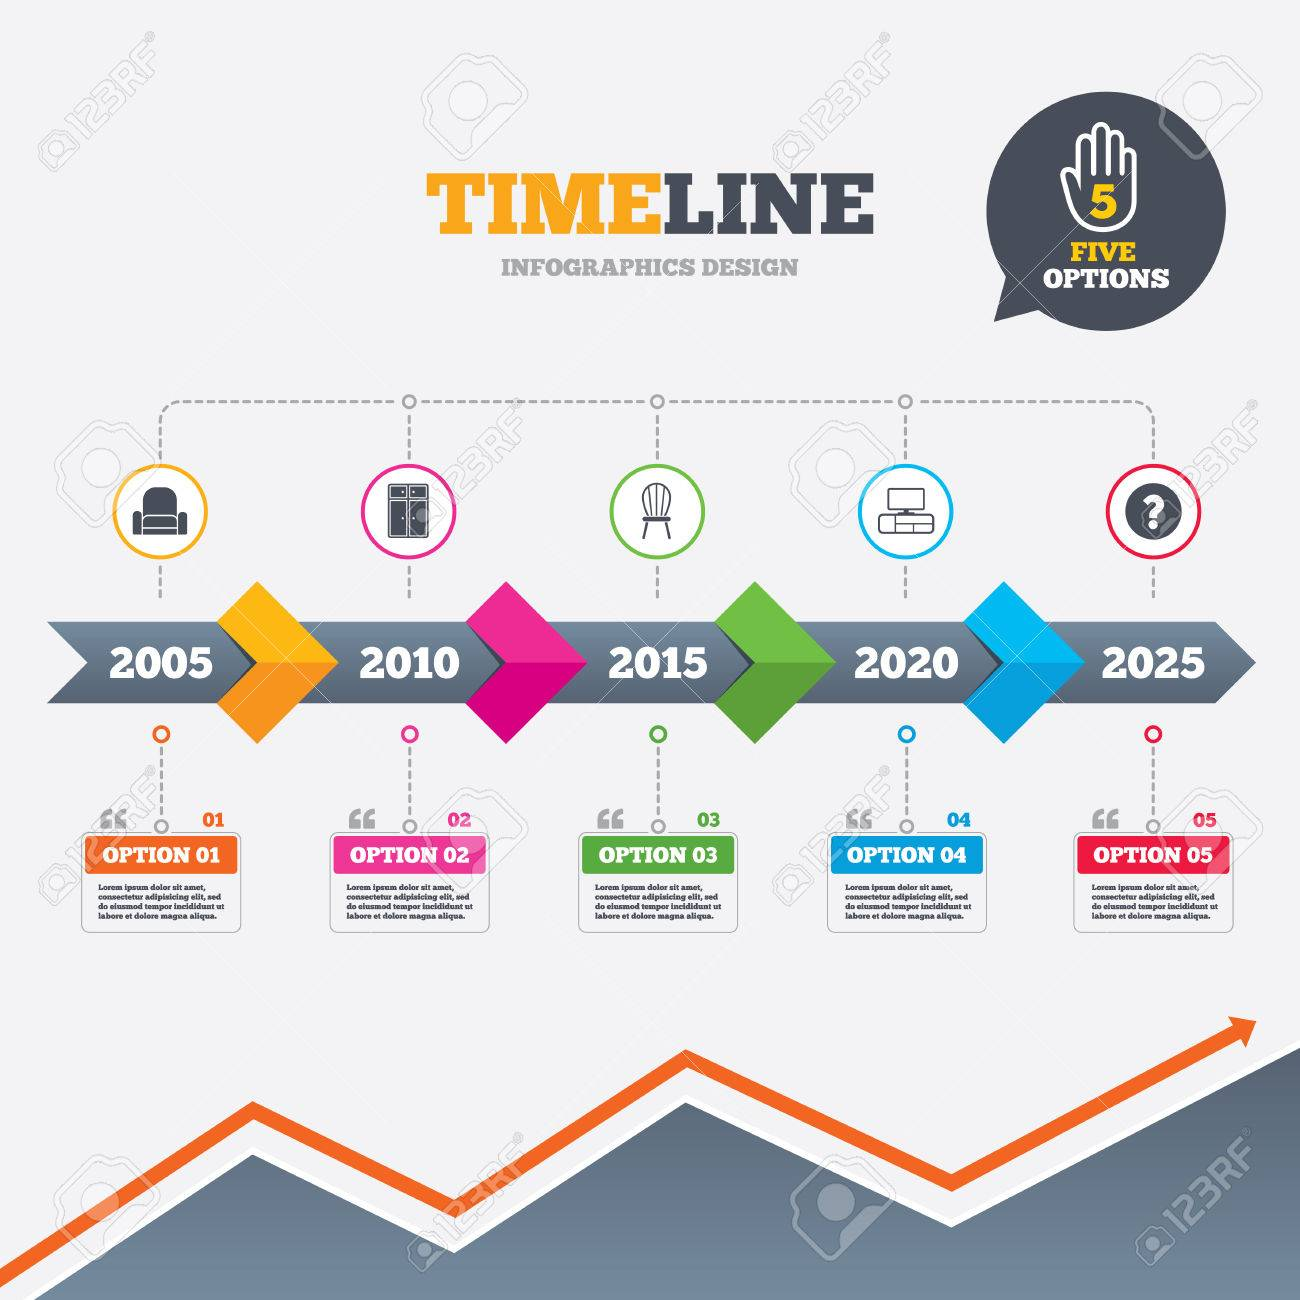 arrows furniture. timeline infographic with arrows furniture icons cupboard chair and tv table signs r